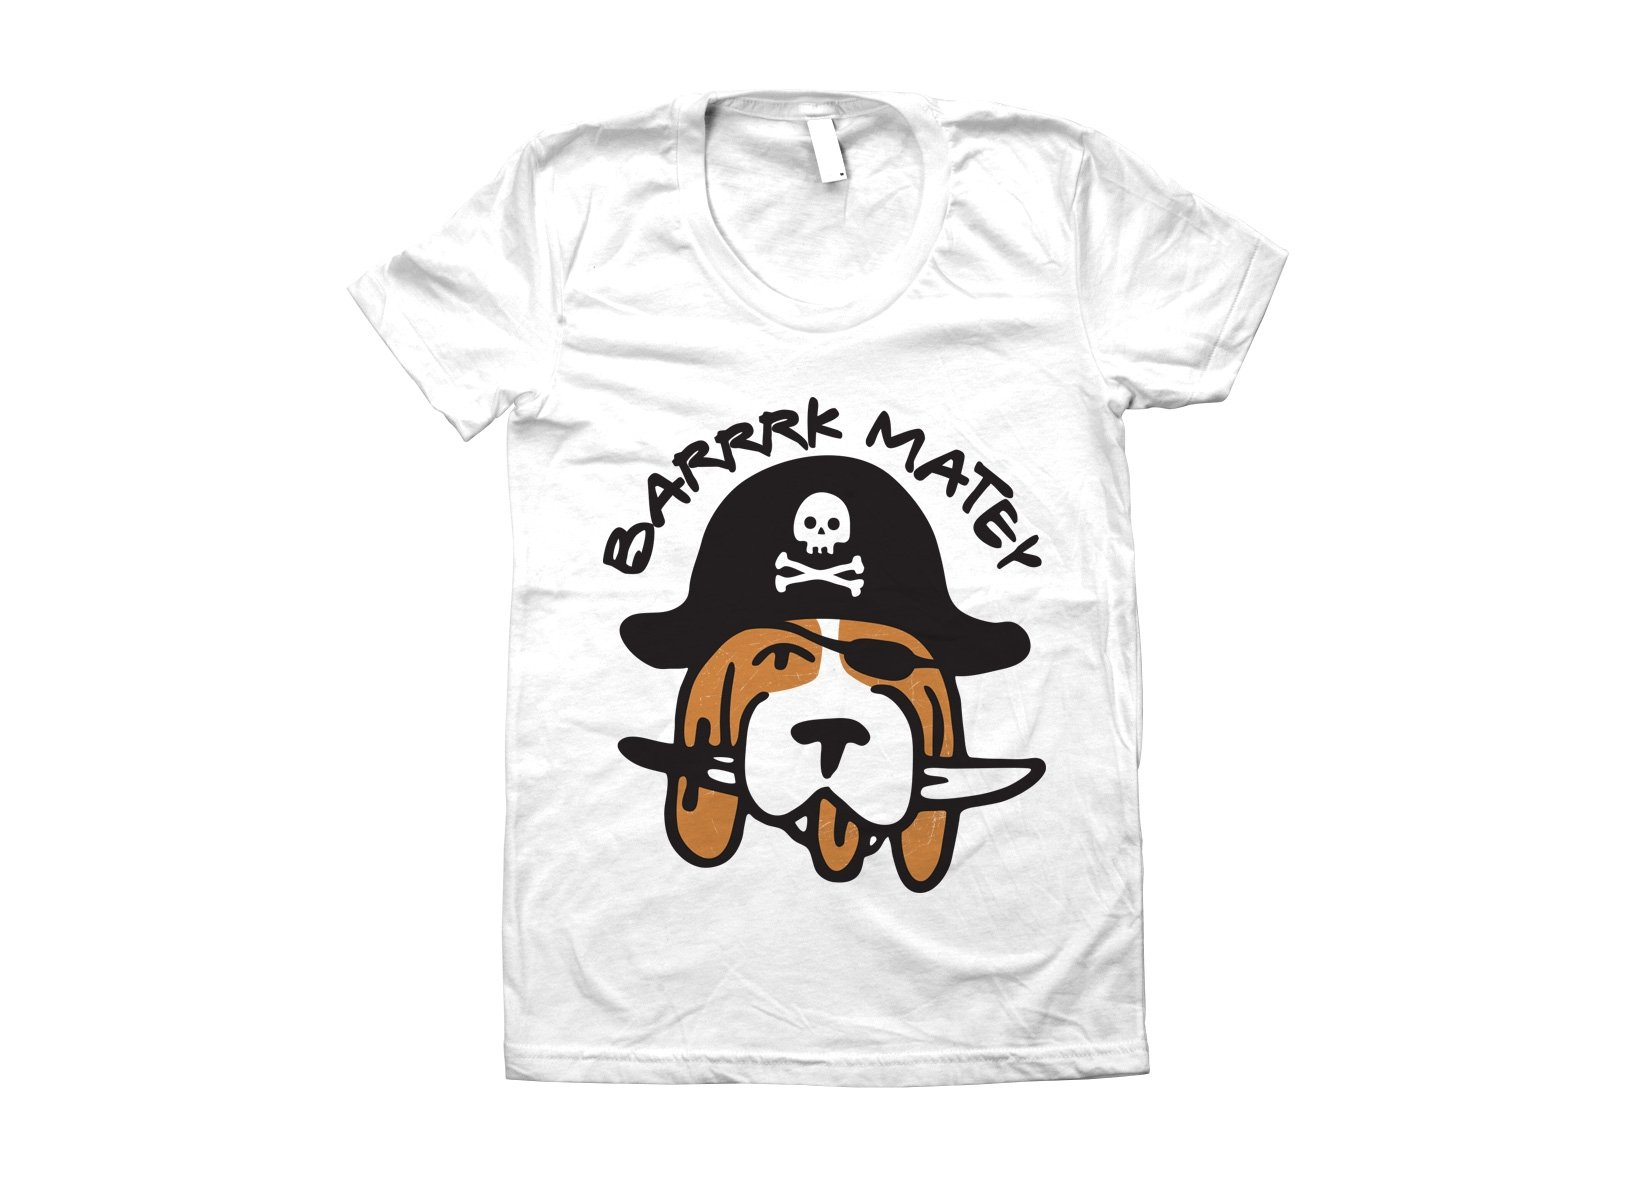 Barrrk Matey on Juniors T-Shirt